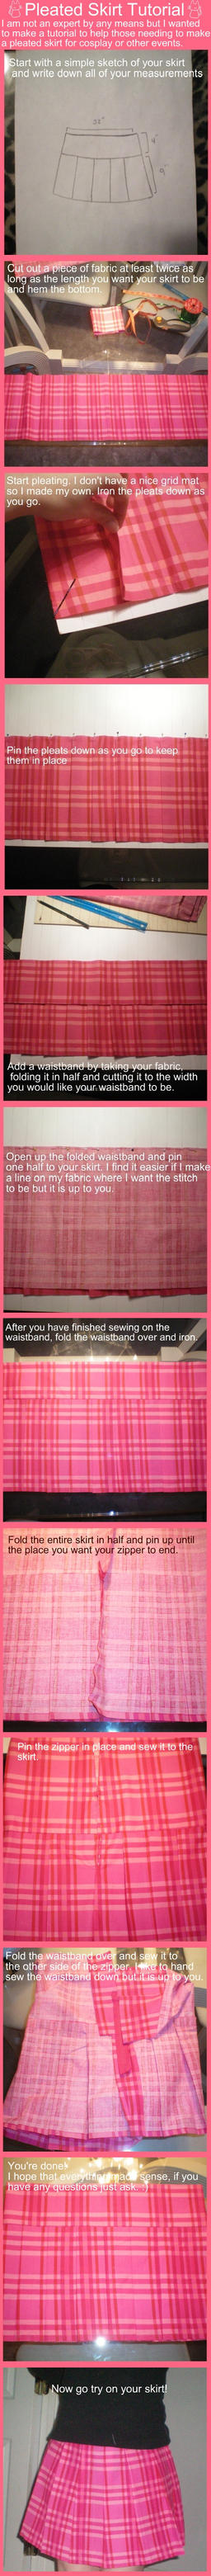 Pleated School Skirt Tutorial by stevoluvmunchkin